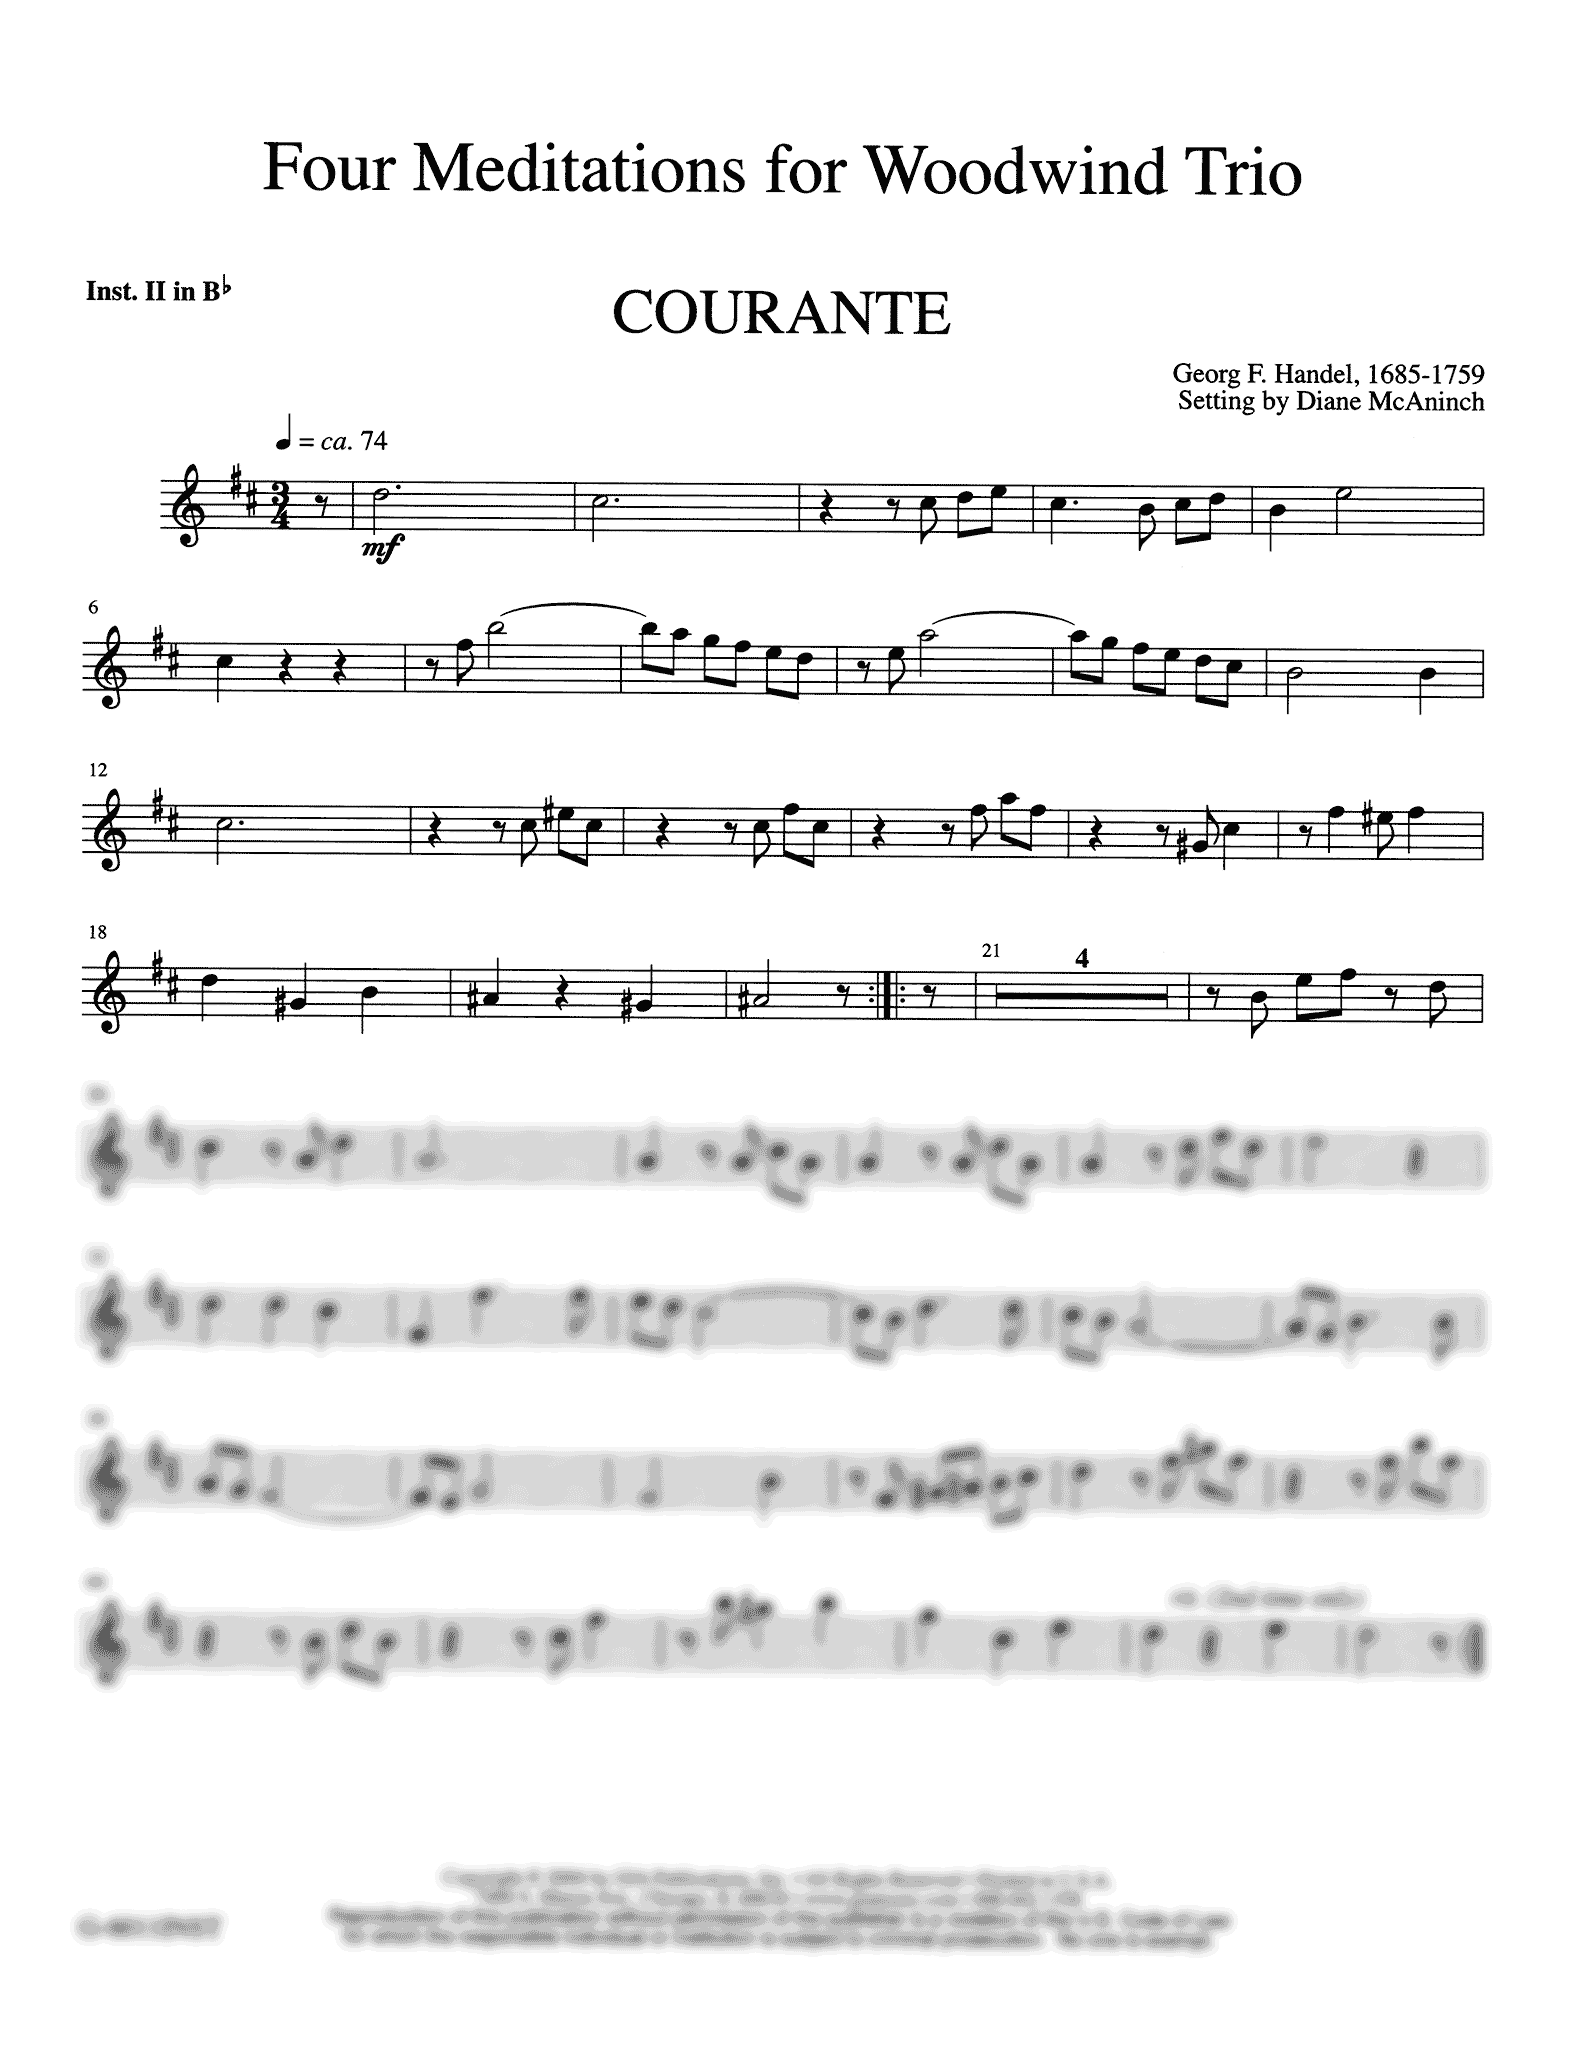 Four Meditations for Woodwind Trio Clarinet part